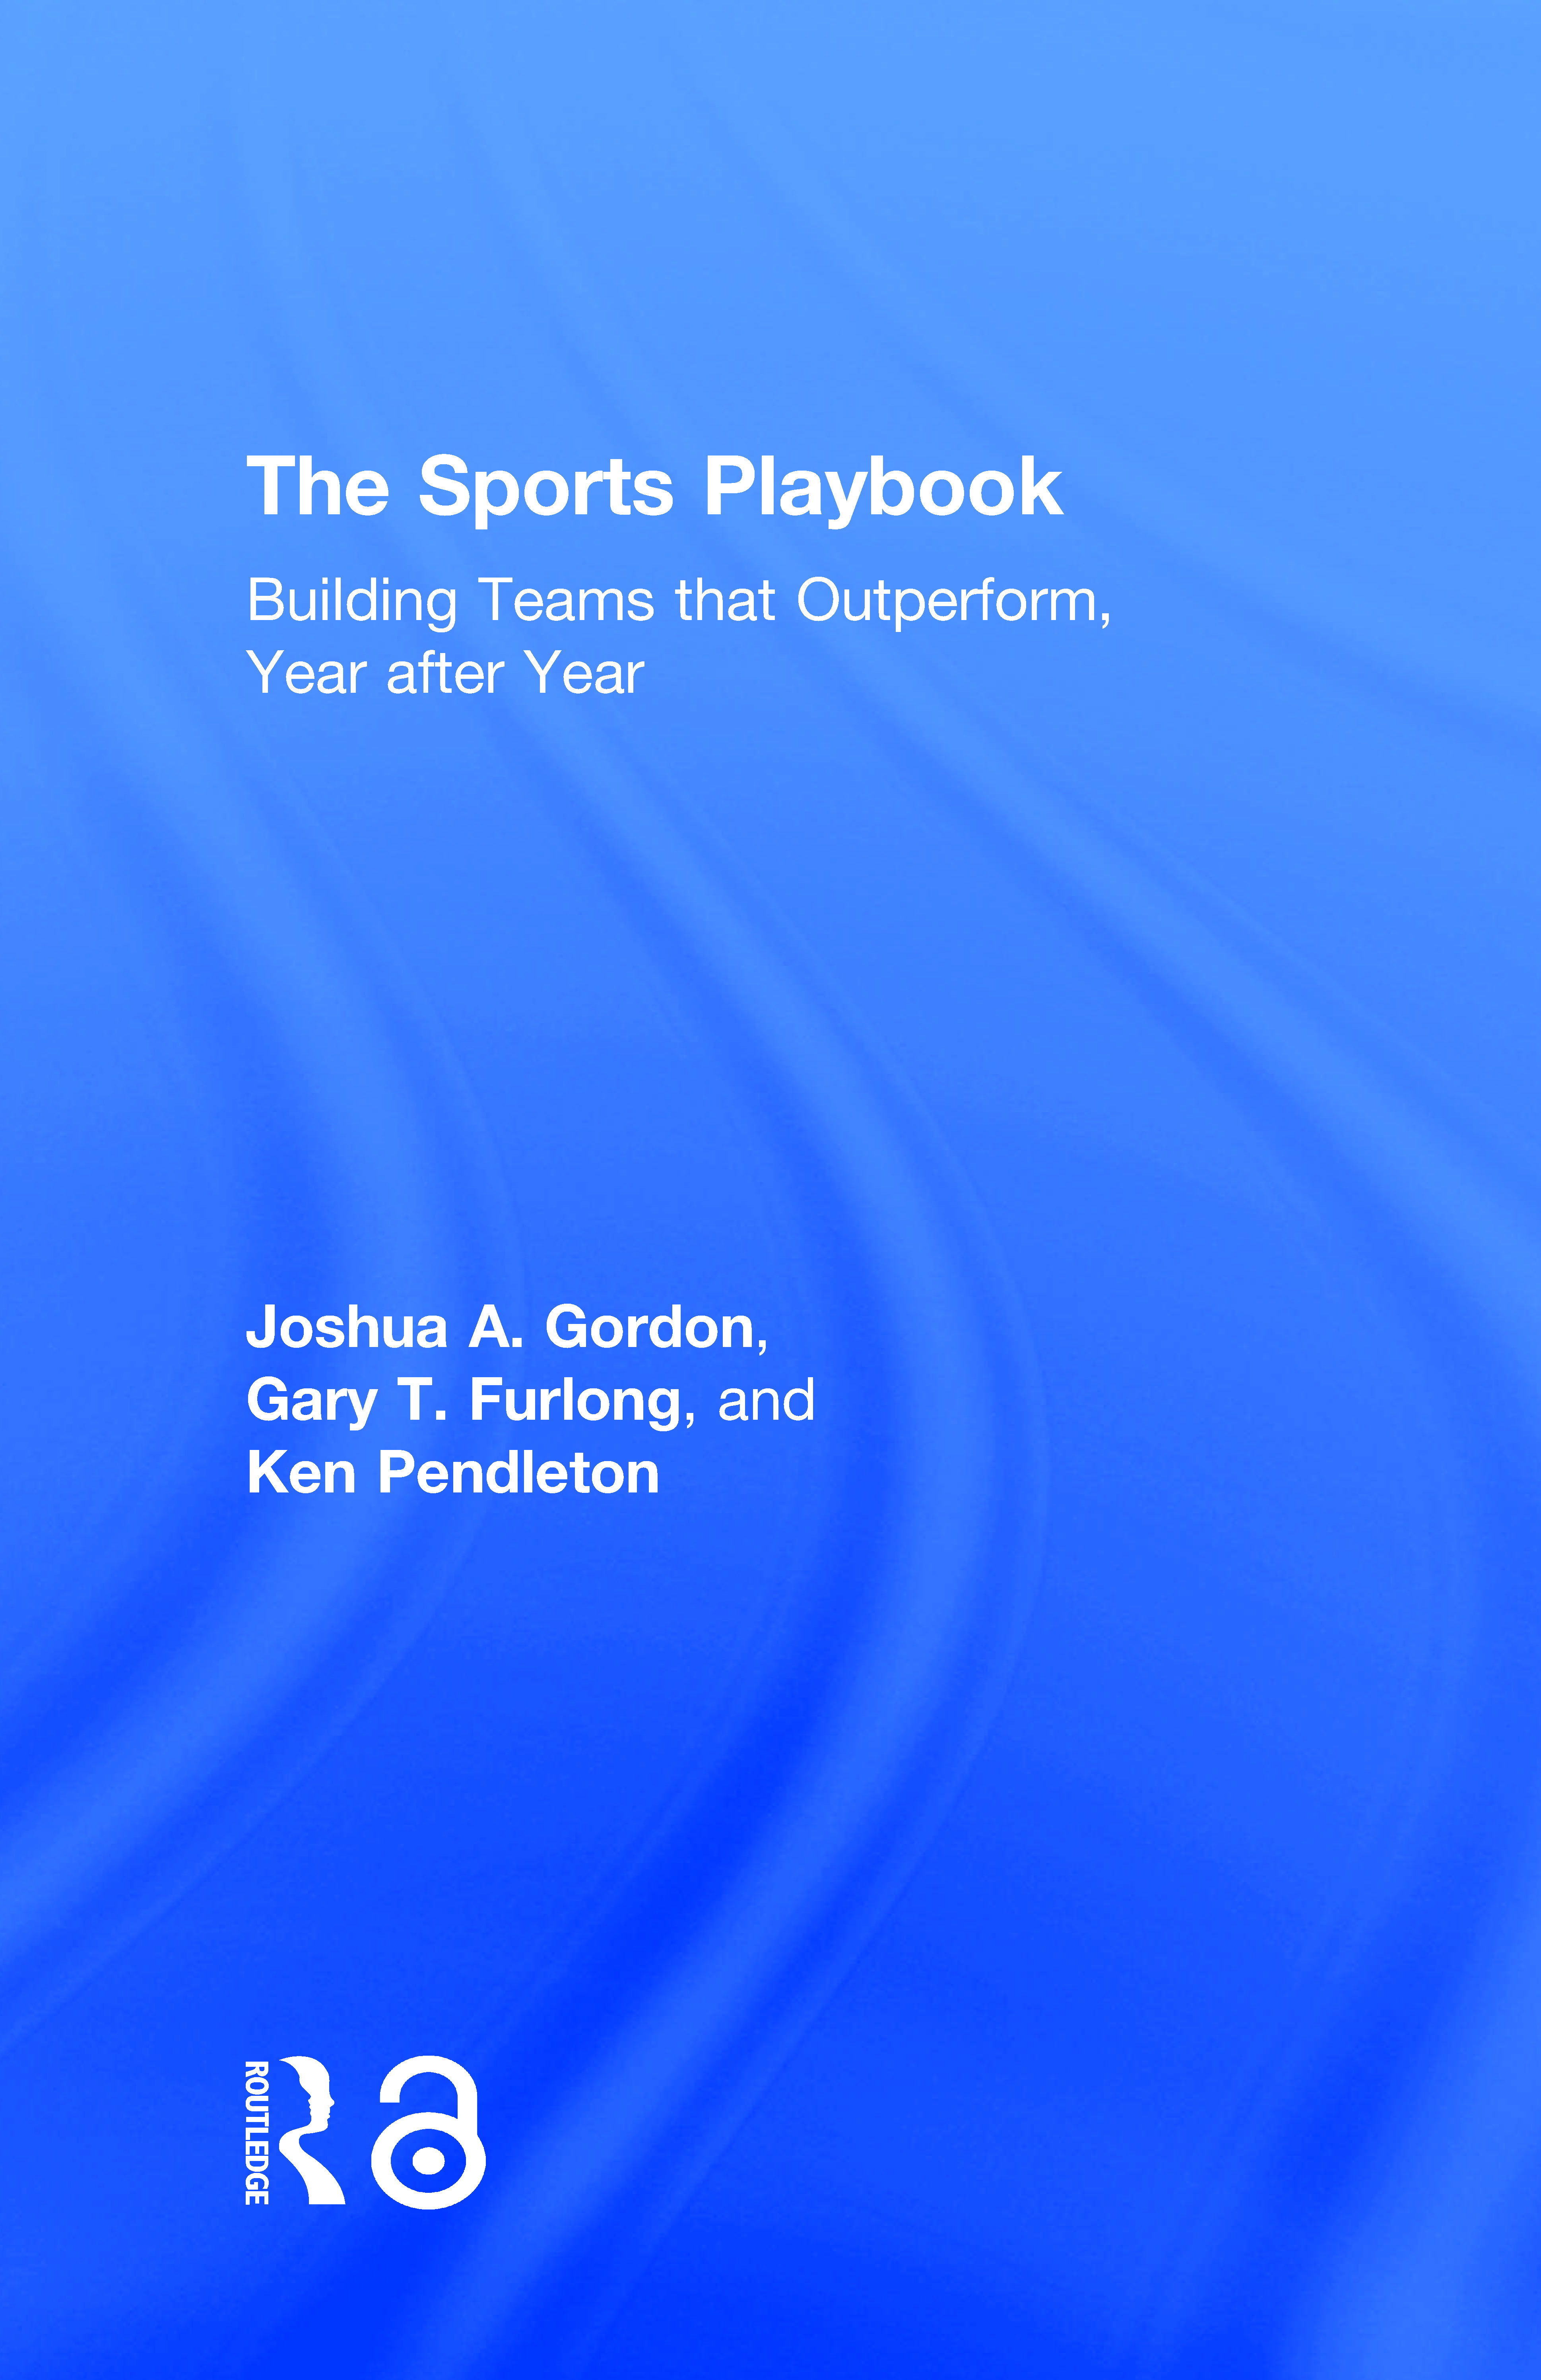 The Sports Playbook: Building Teams that Outperform, Year after Year book cover